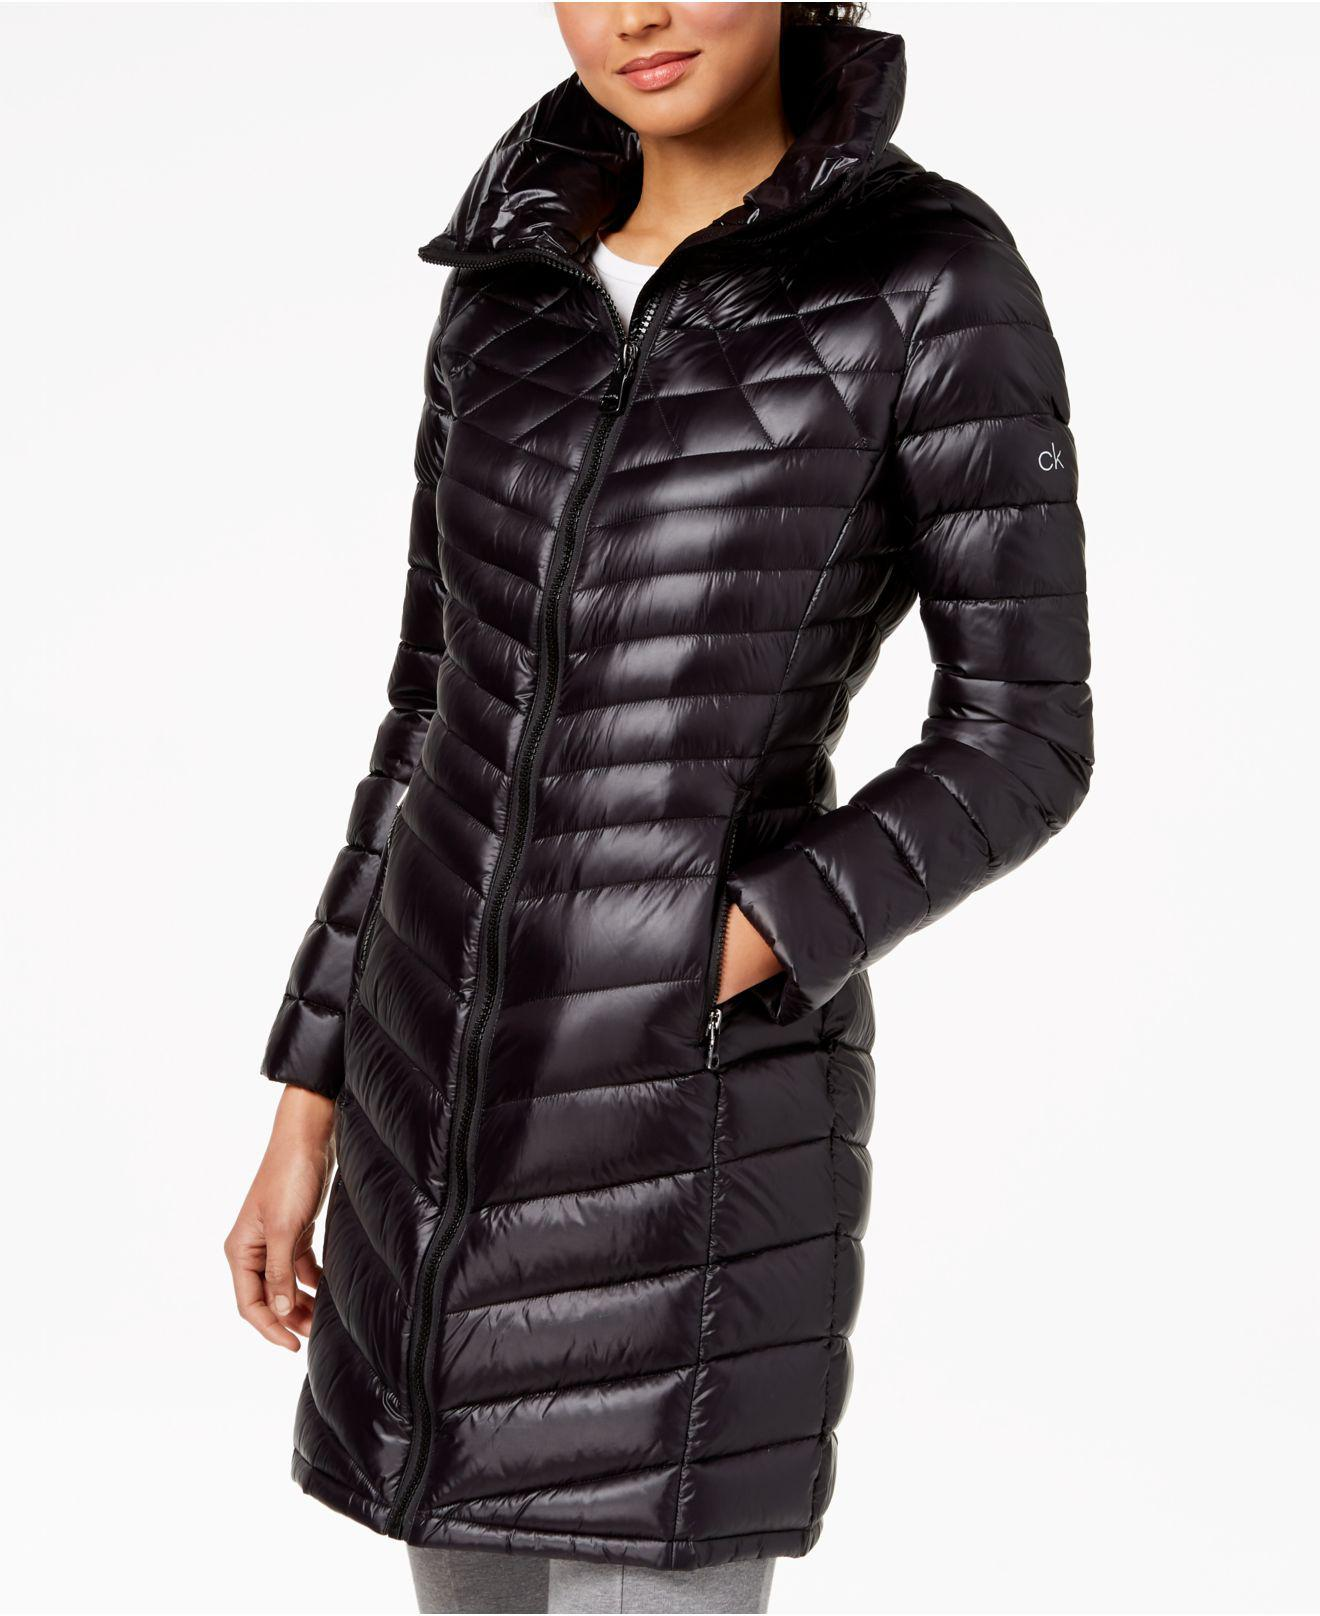 b658c981eddd Lyst - Calvin Klein Hooded Packable Puffer Coat in Black